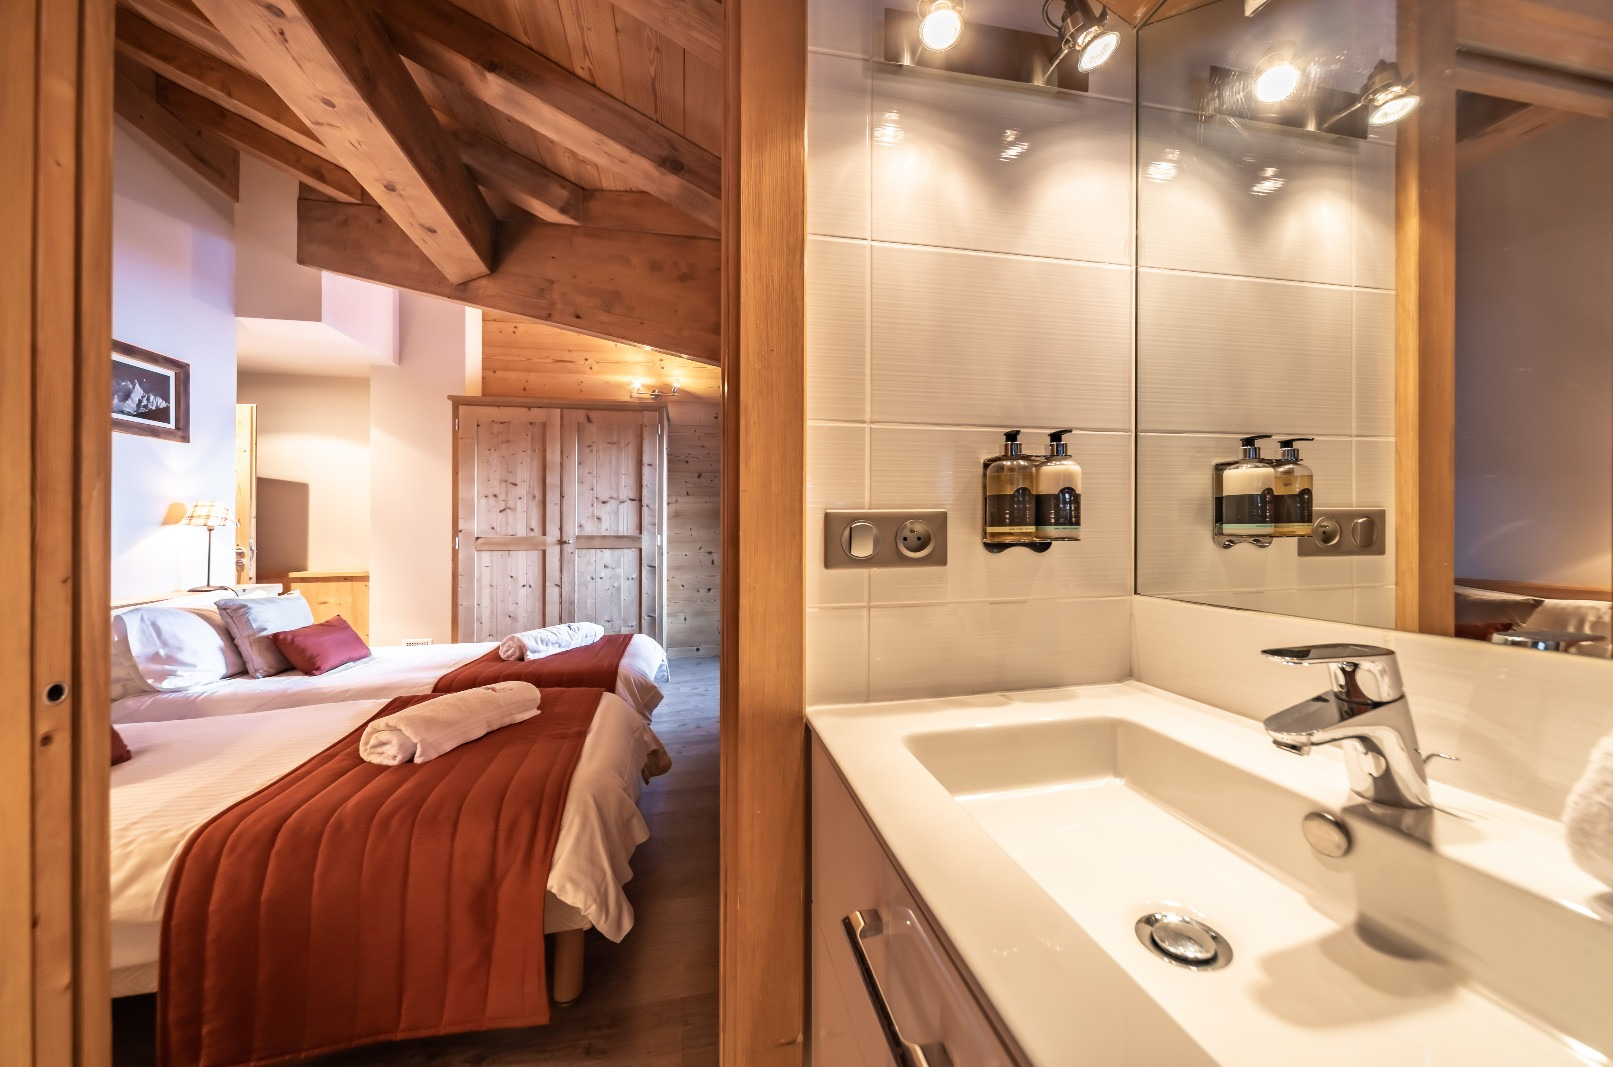 Le Mur Suisse Ensuite Shower Room